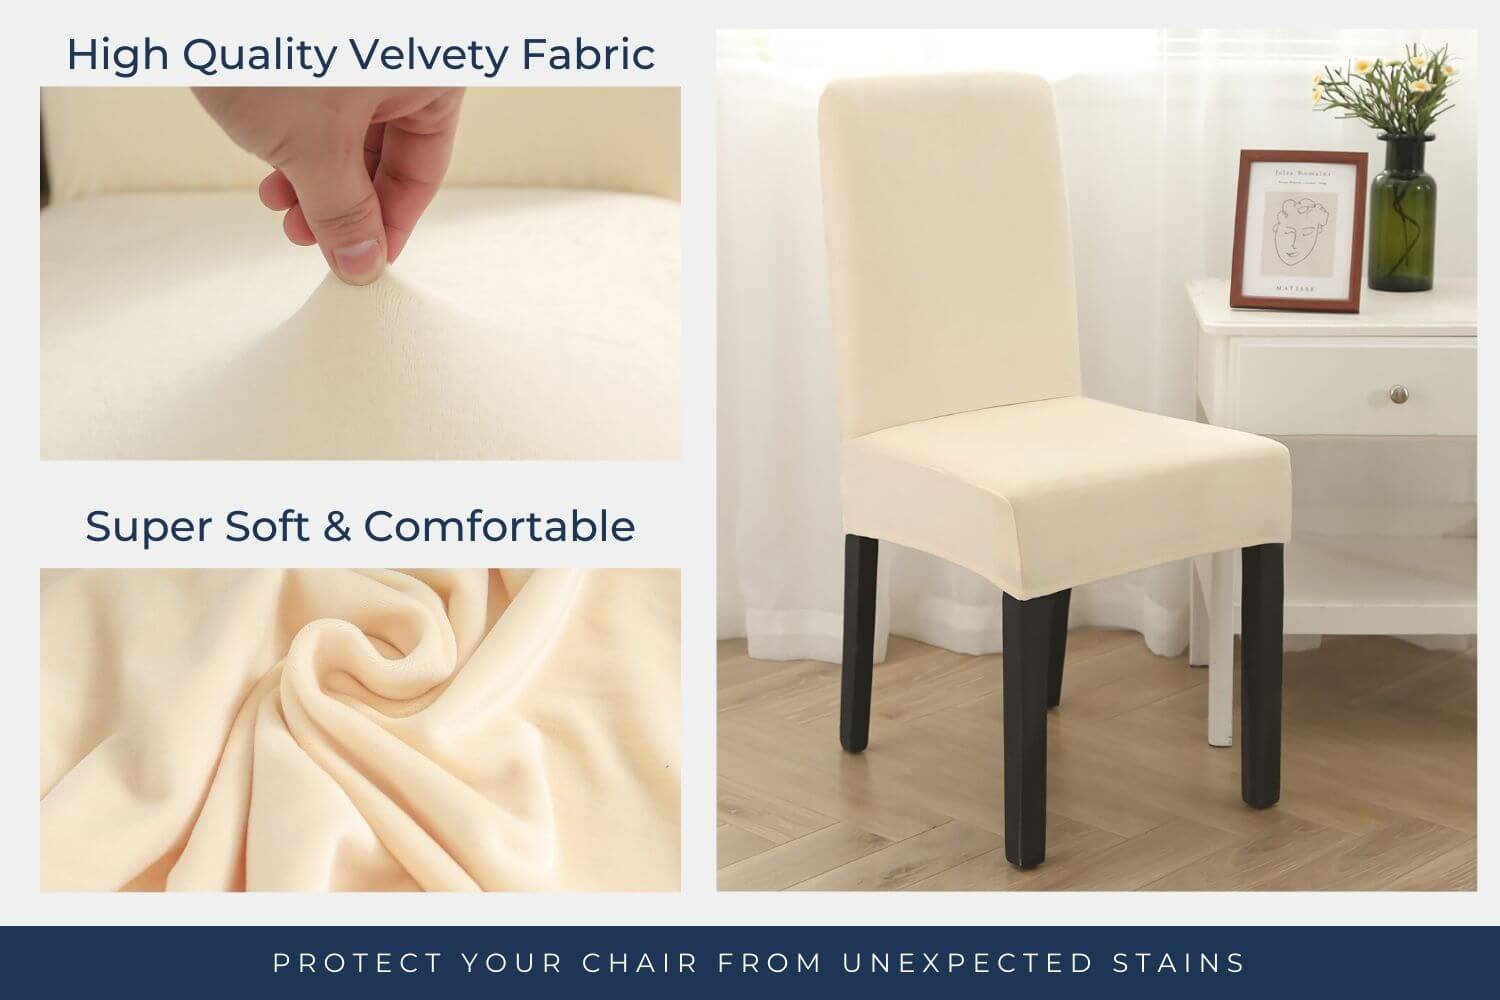 Protect your chair from unexpected stains